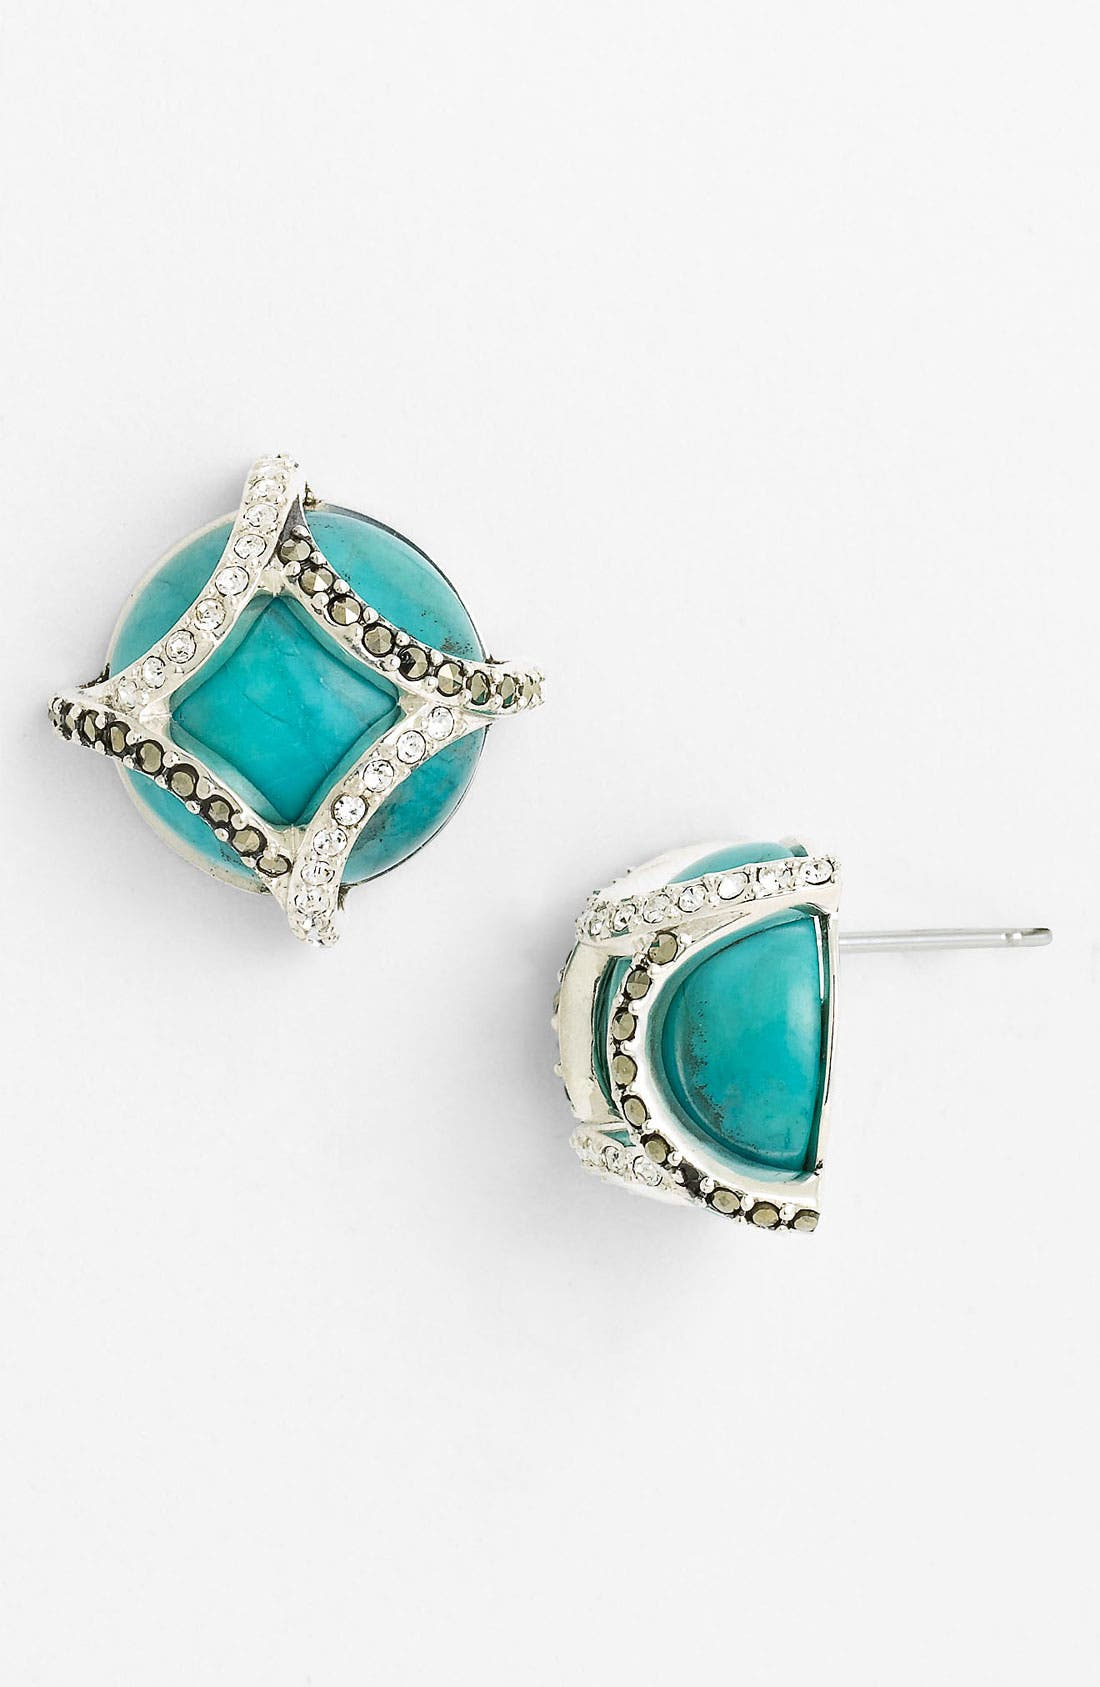 Main Image - Judith Jack 'Turq Matrix' Stud Earrings